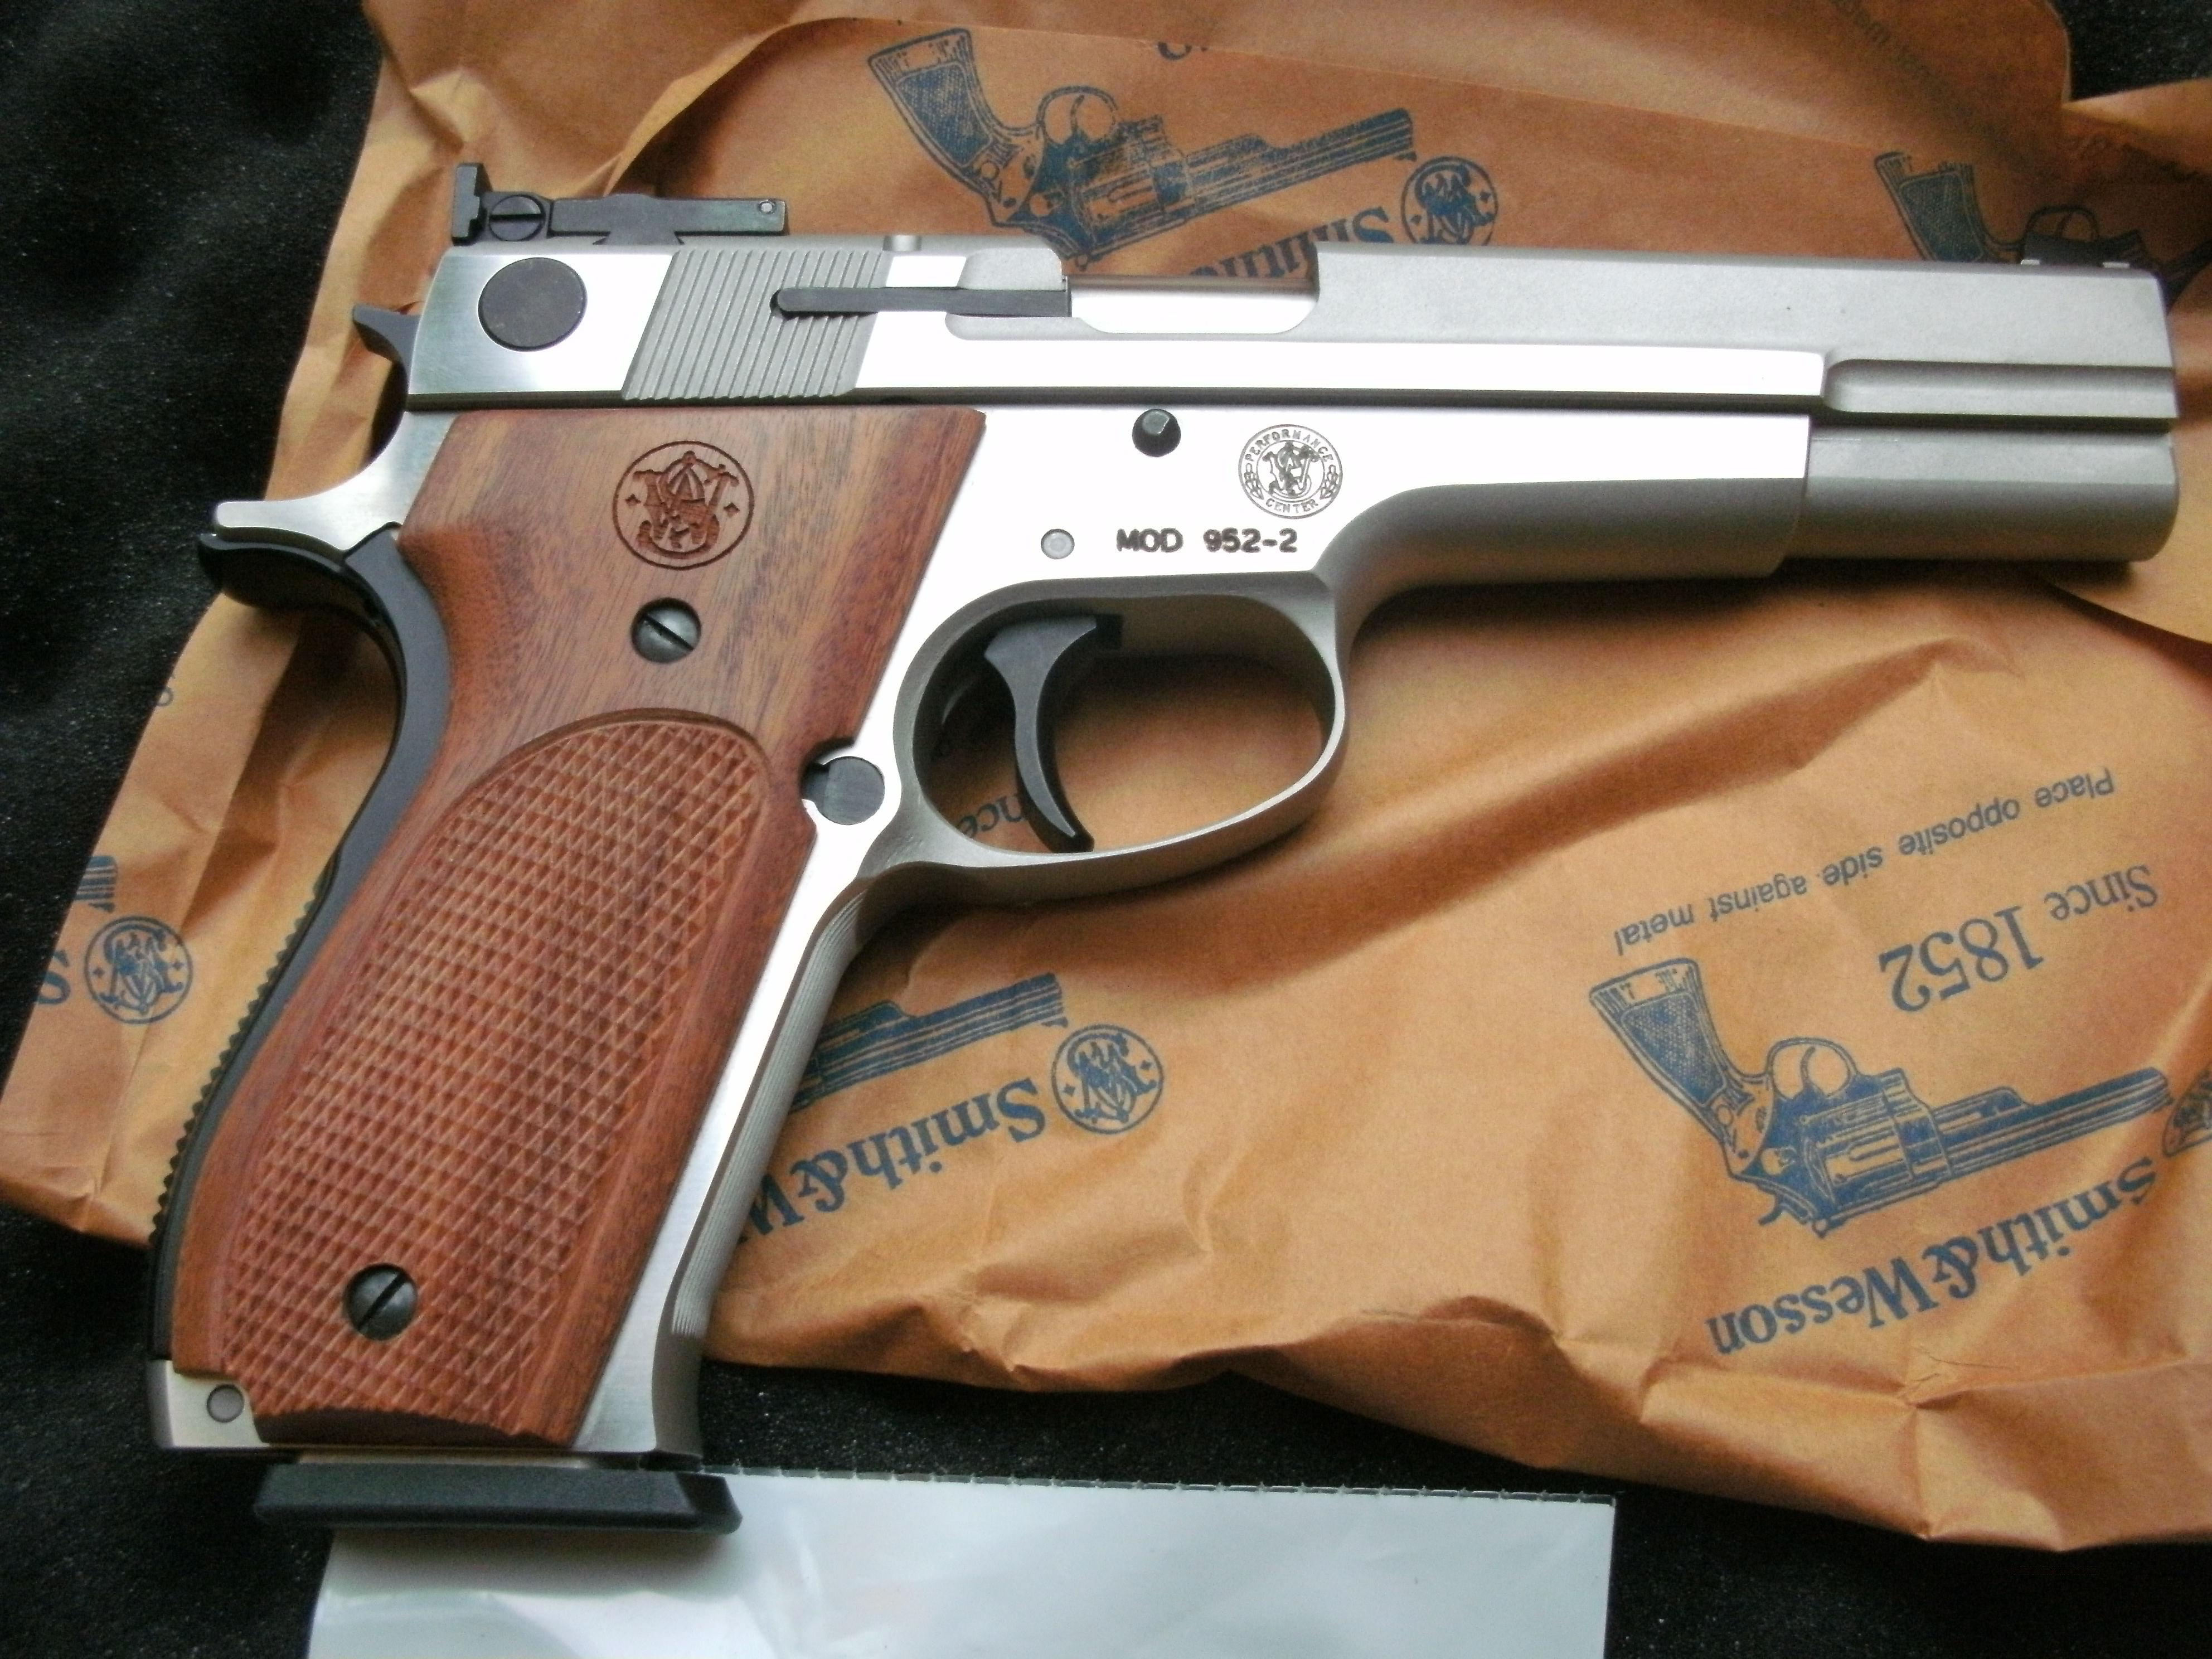 S&W 952-2 9mm Performance Center NOS Unfired Smith and Wesson Guns >  Pistols >